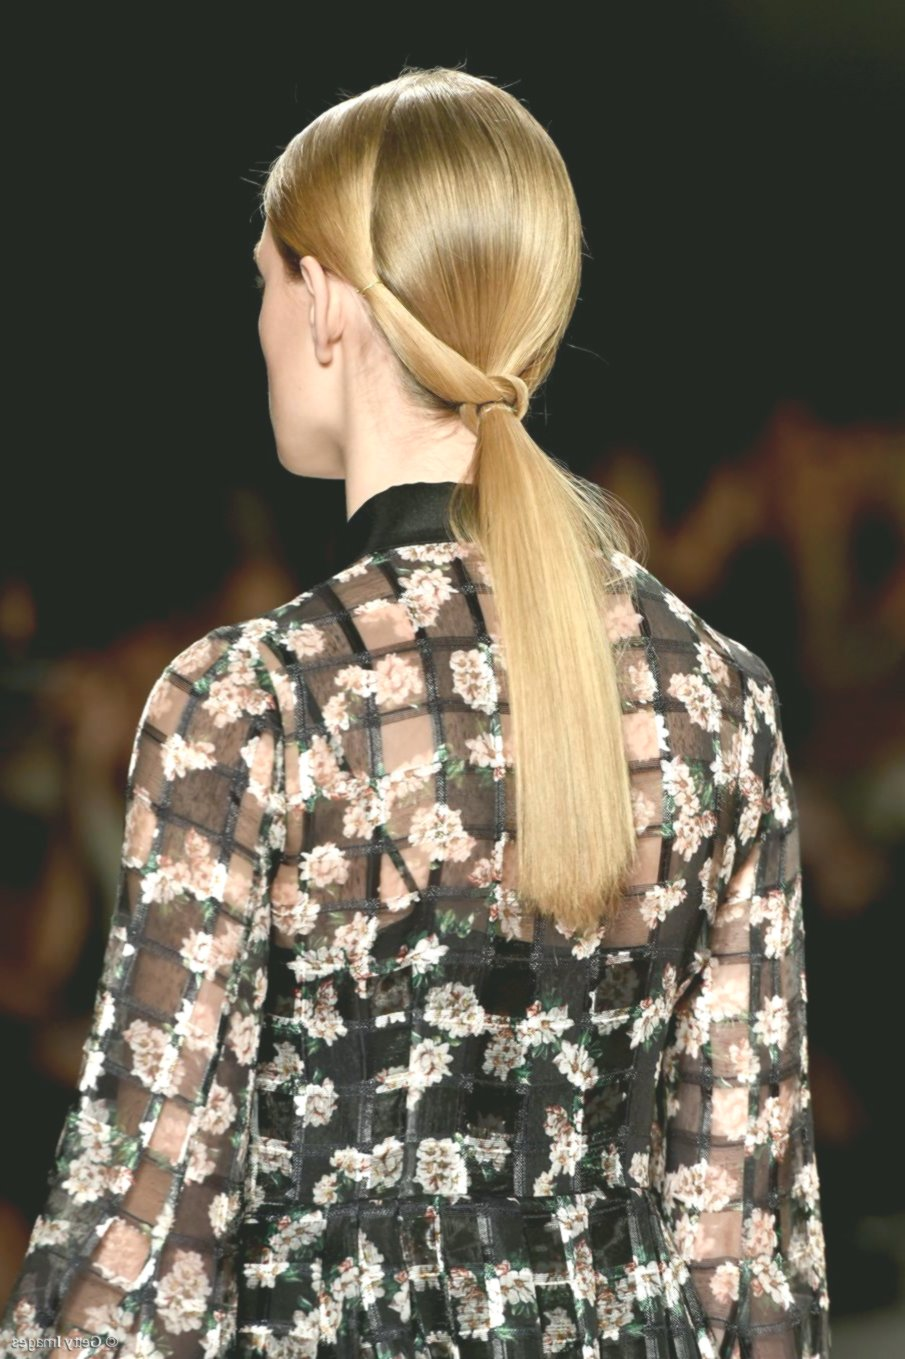 luxury hairstyles trend portrait-Superb hairstyles trend collection